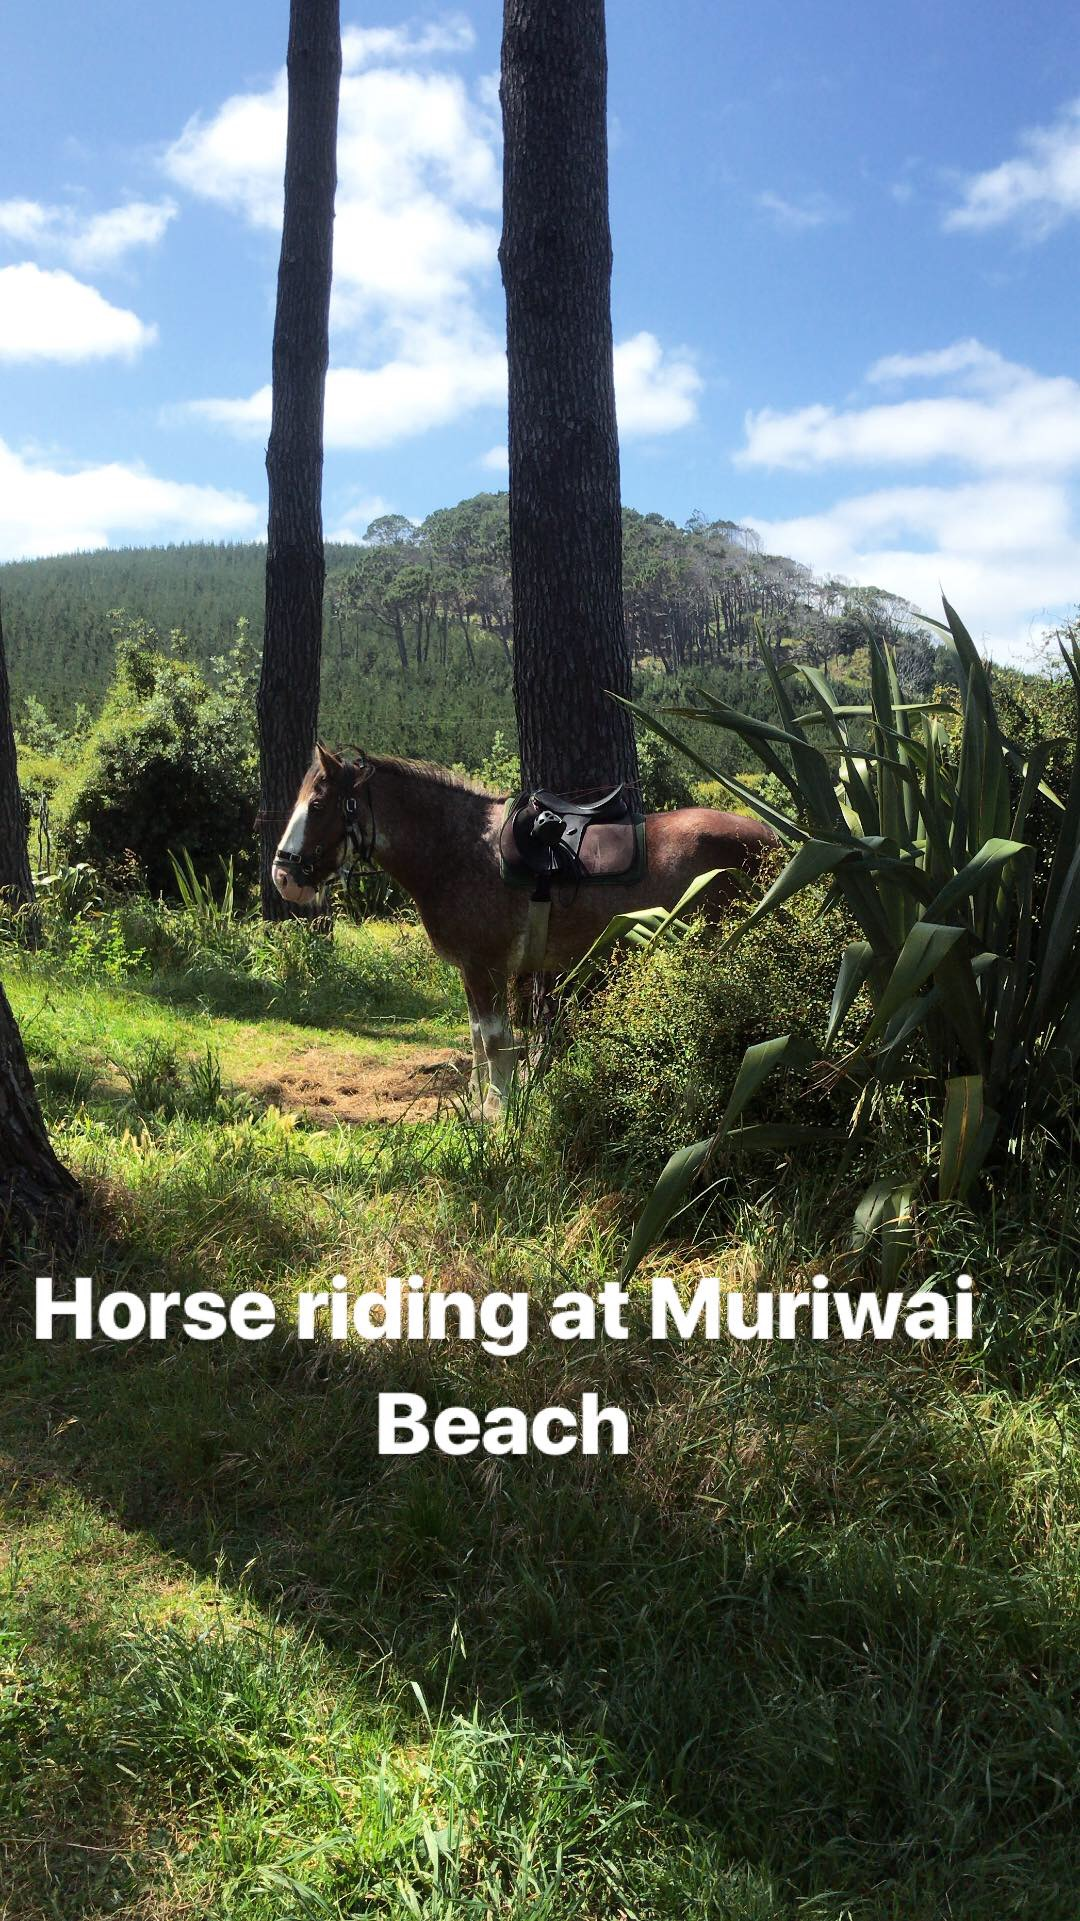 Horse riding, Muriwai Beach, New Zealand